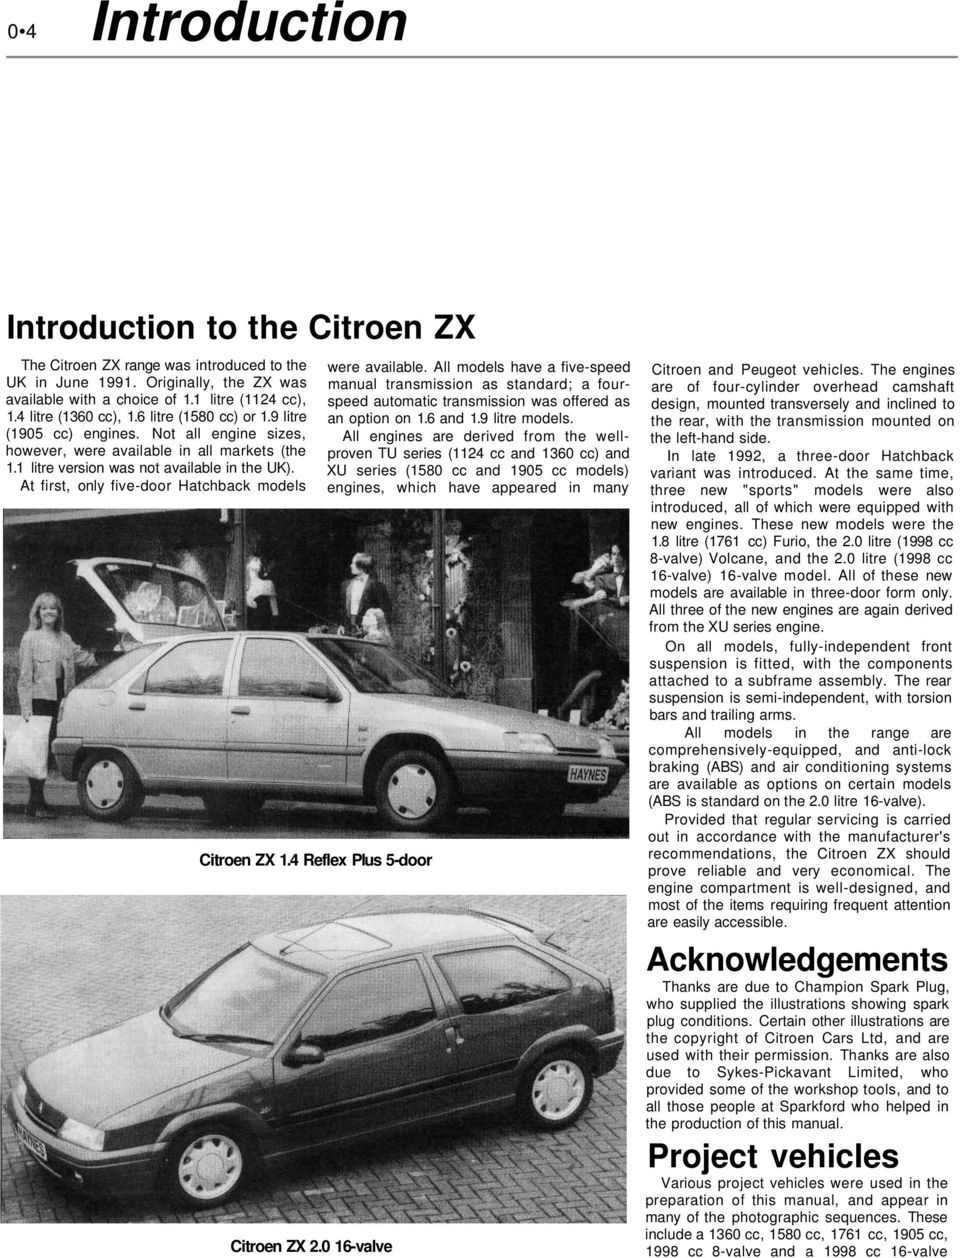 At first, only five-door Hatchback models Citroen ZX 1.4 Refle Plus 5-